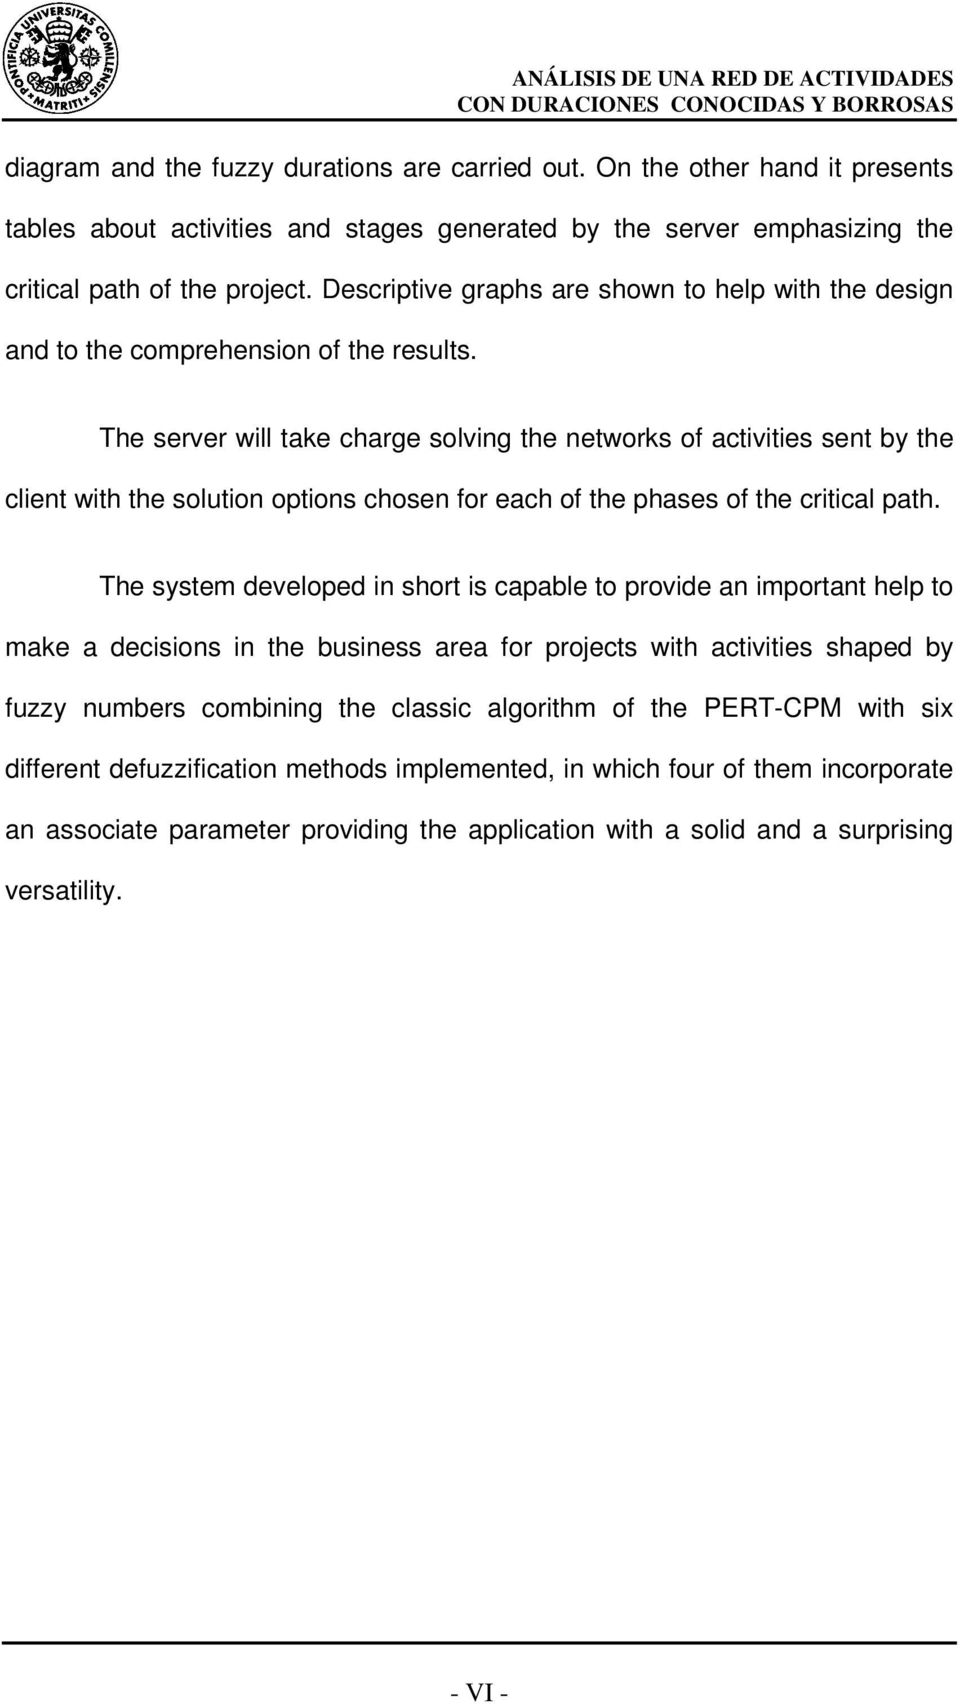 The server will take charge solving the networks of activities sent by the client with the solution options chosen for each of the phases of the critical path.